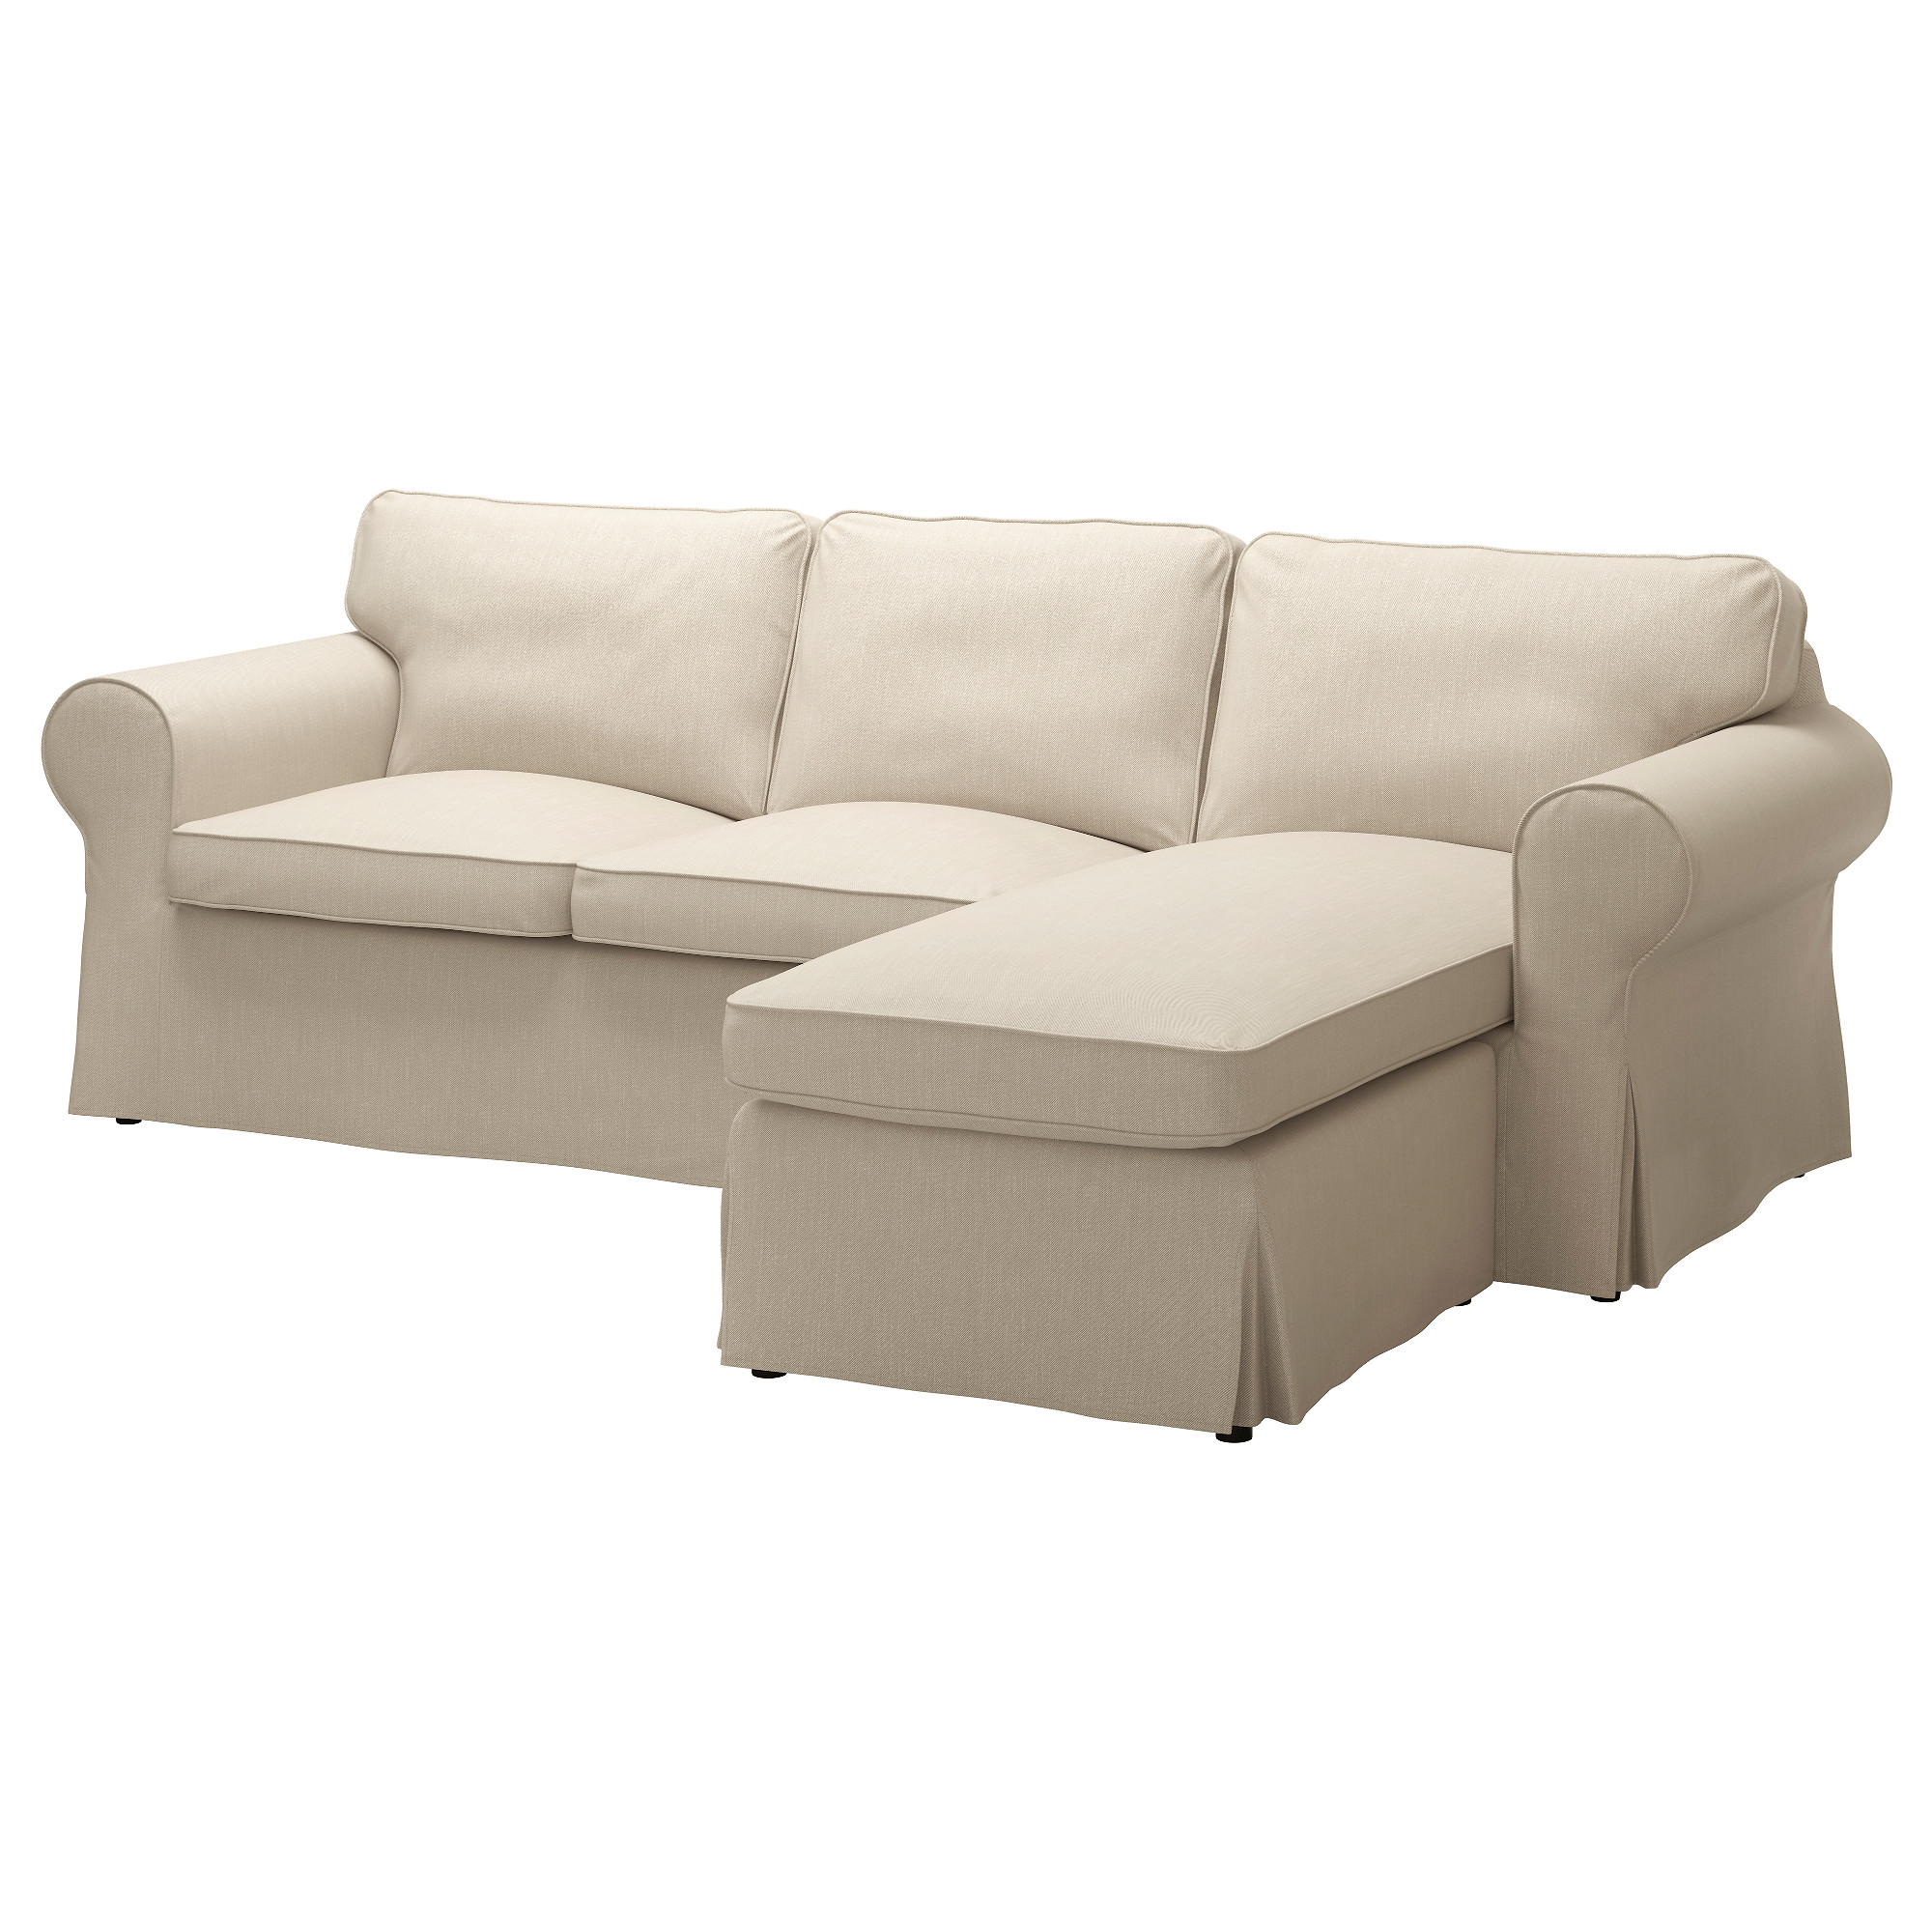 3 Seat Sofa Rp Nordvalla With Chaise Longue Dark Beige